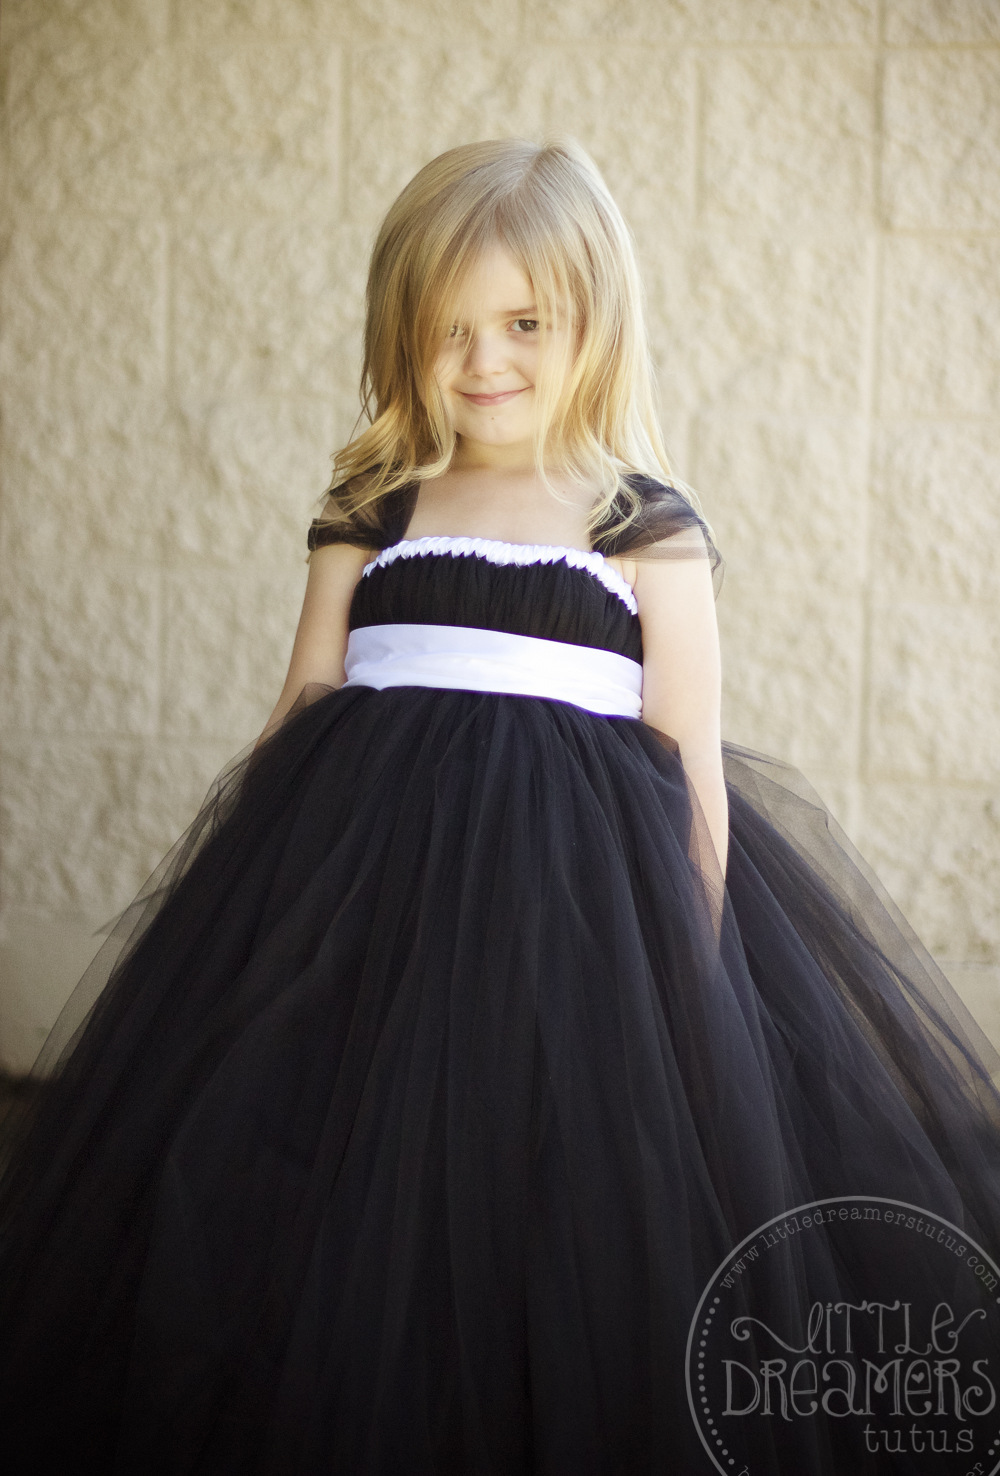 New Girls Black Long Tutu Dress Kids Fluffy Tulle Wedding Evening Dresses with White Satin Bow Waist Children Party Tutus Dress vintage bow waist bubble dress